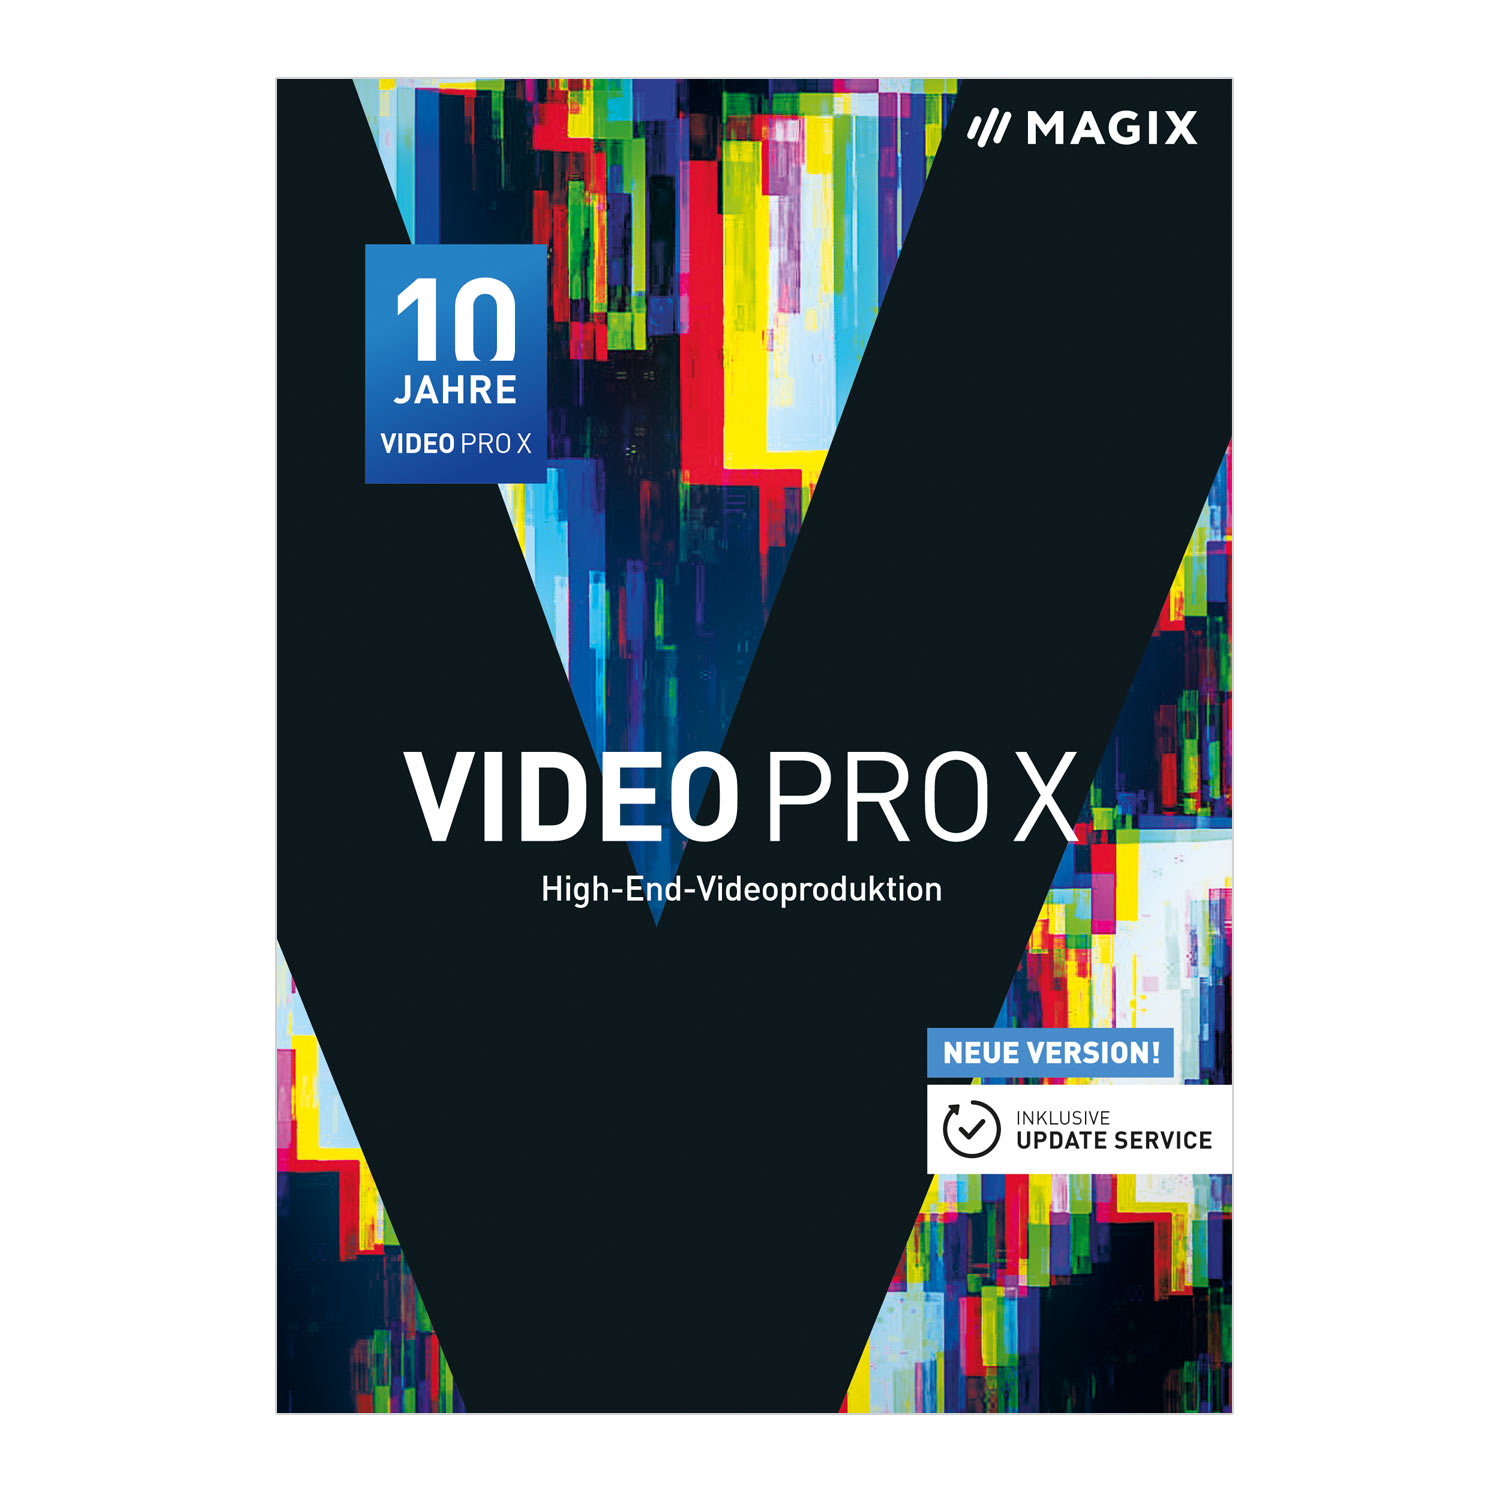 MAGIX Video Pro X - Jubiläumsversion 10 - Preisgekrönte Software für professionelle Videobearbeitung [Download]